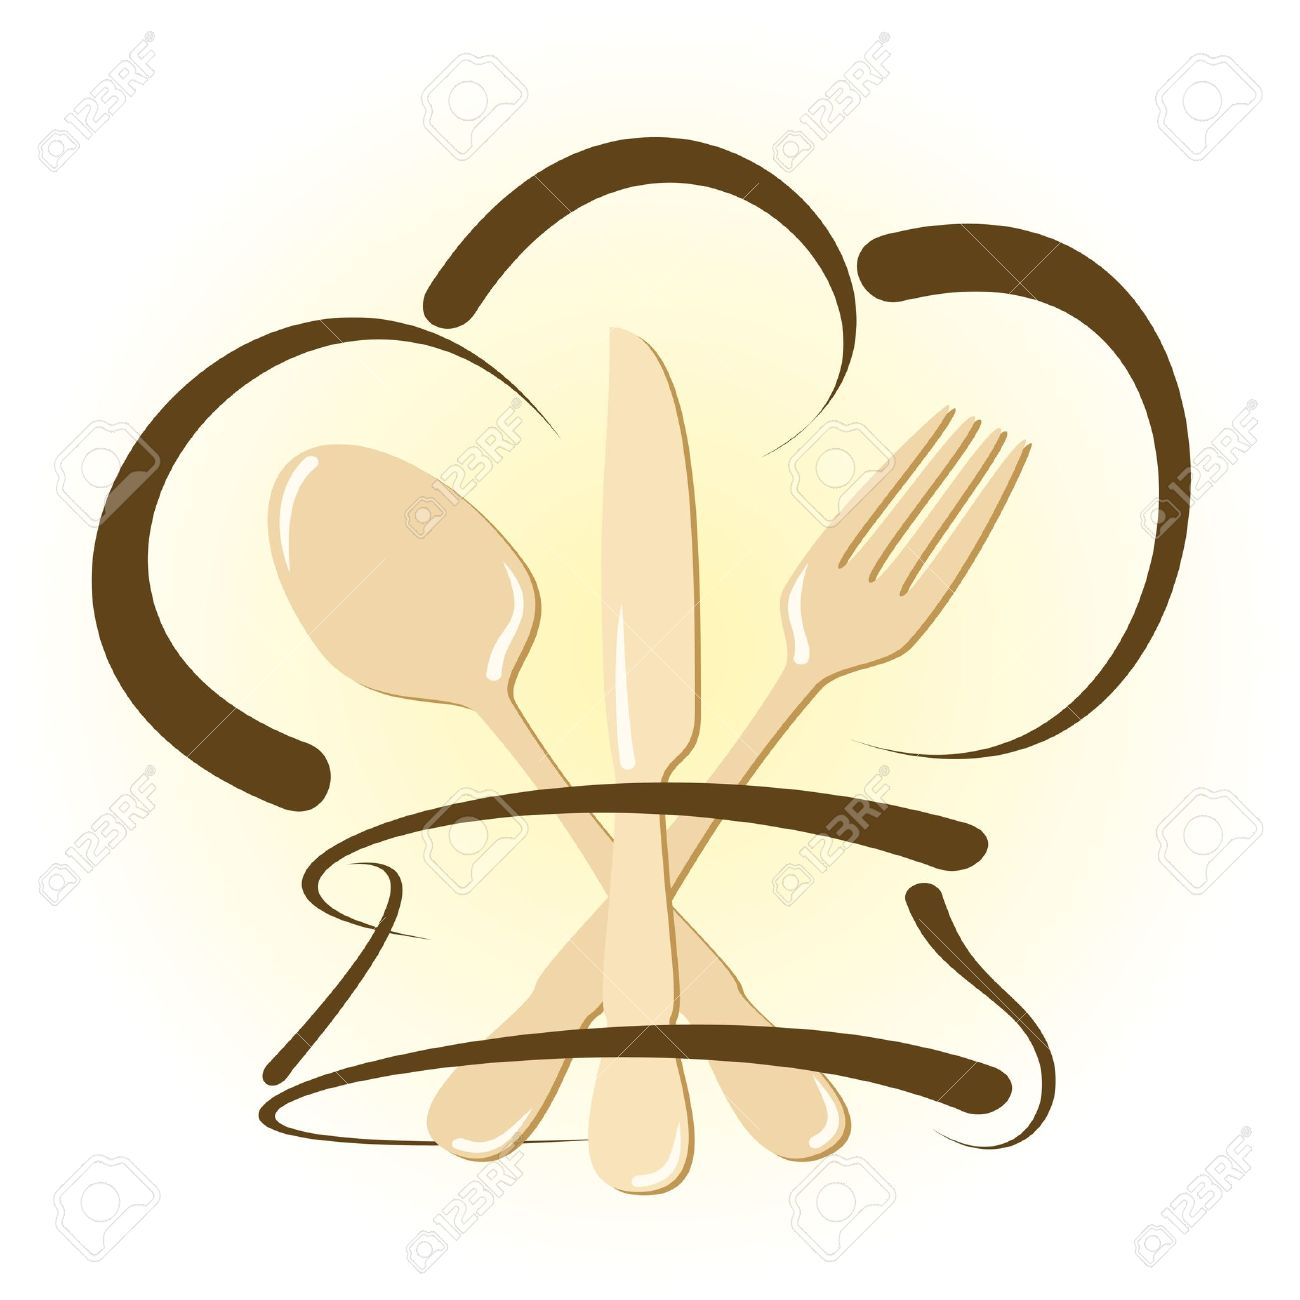 Simple restaurant icon with cutlery and chef hat Stock Vector - 13376177